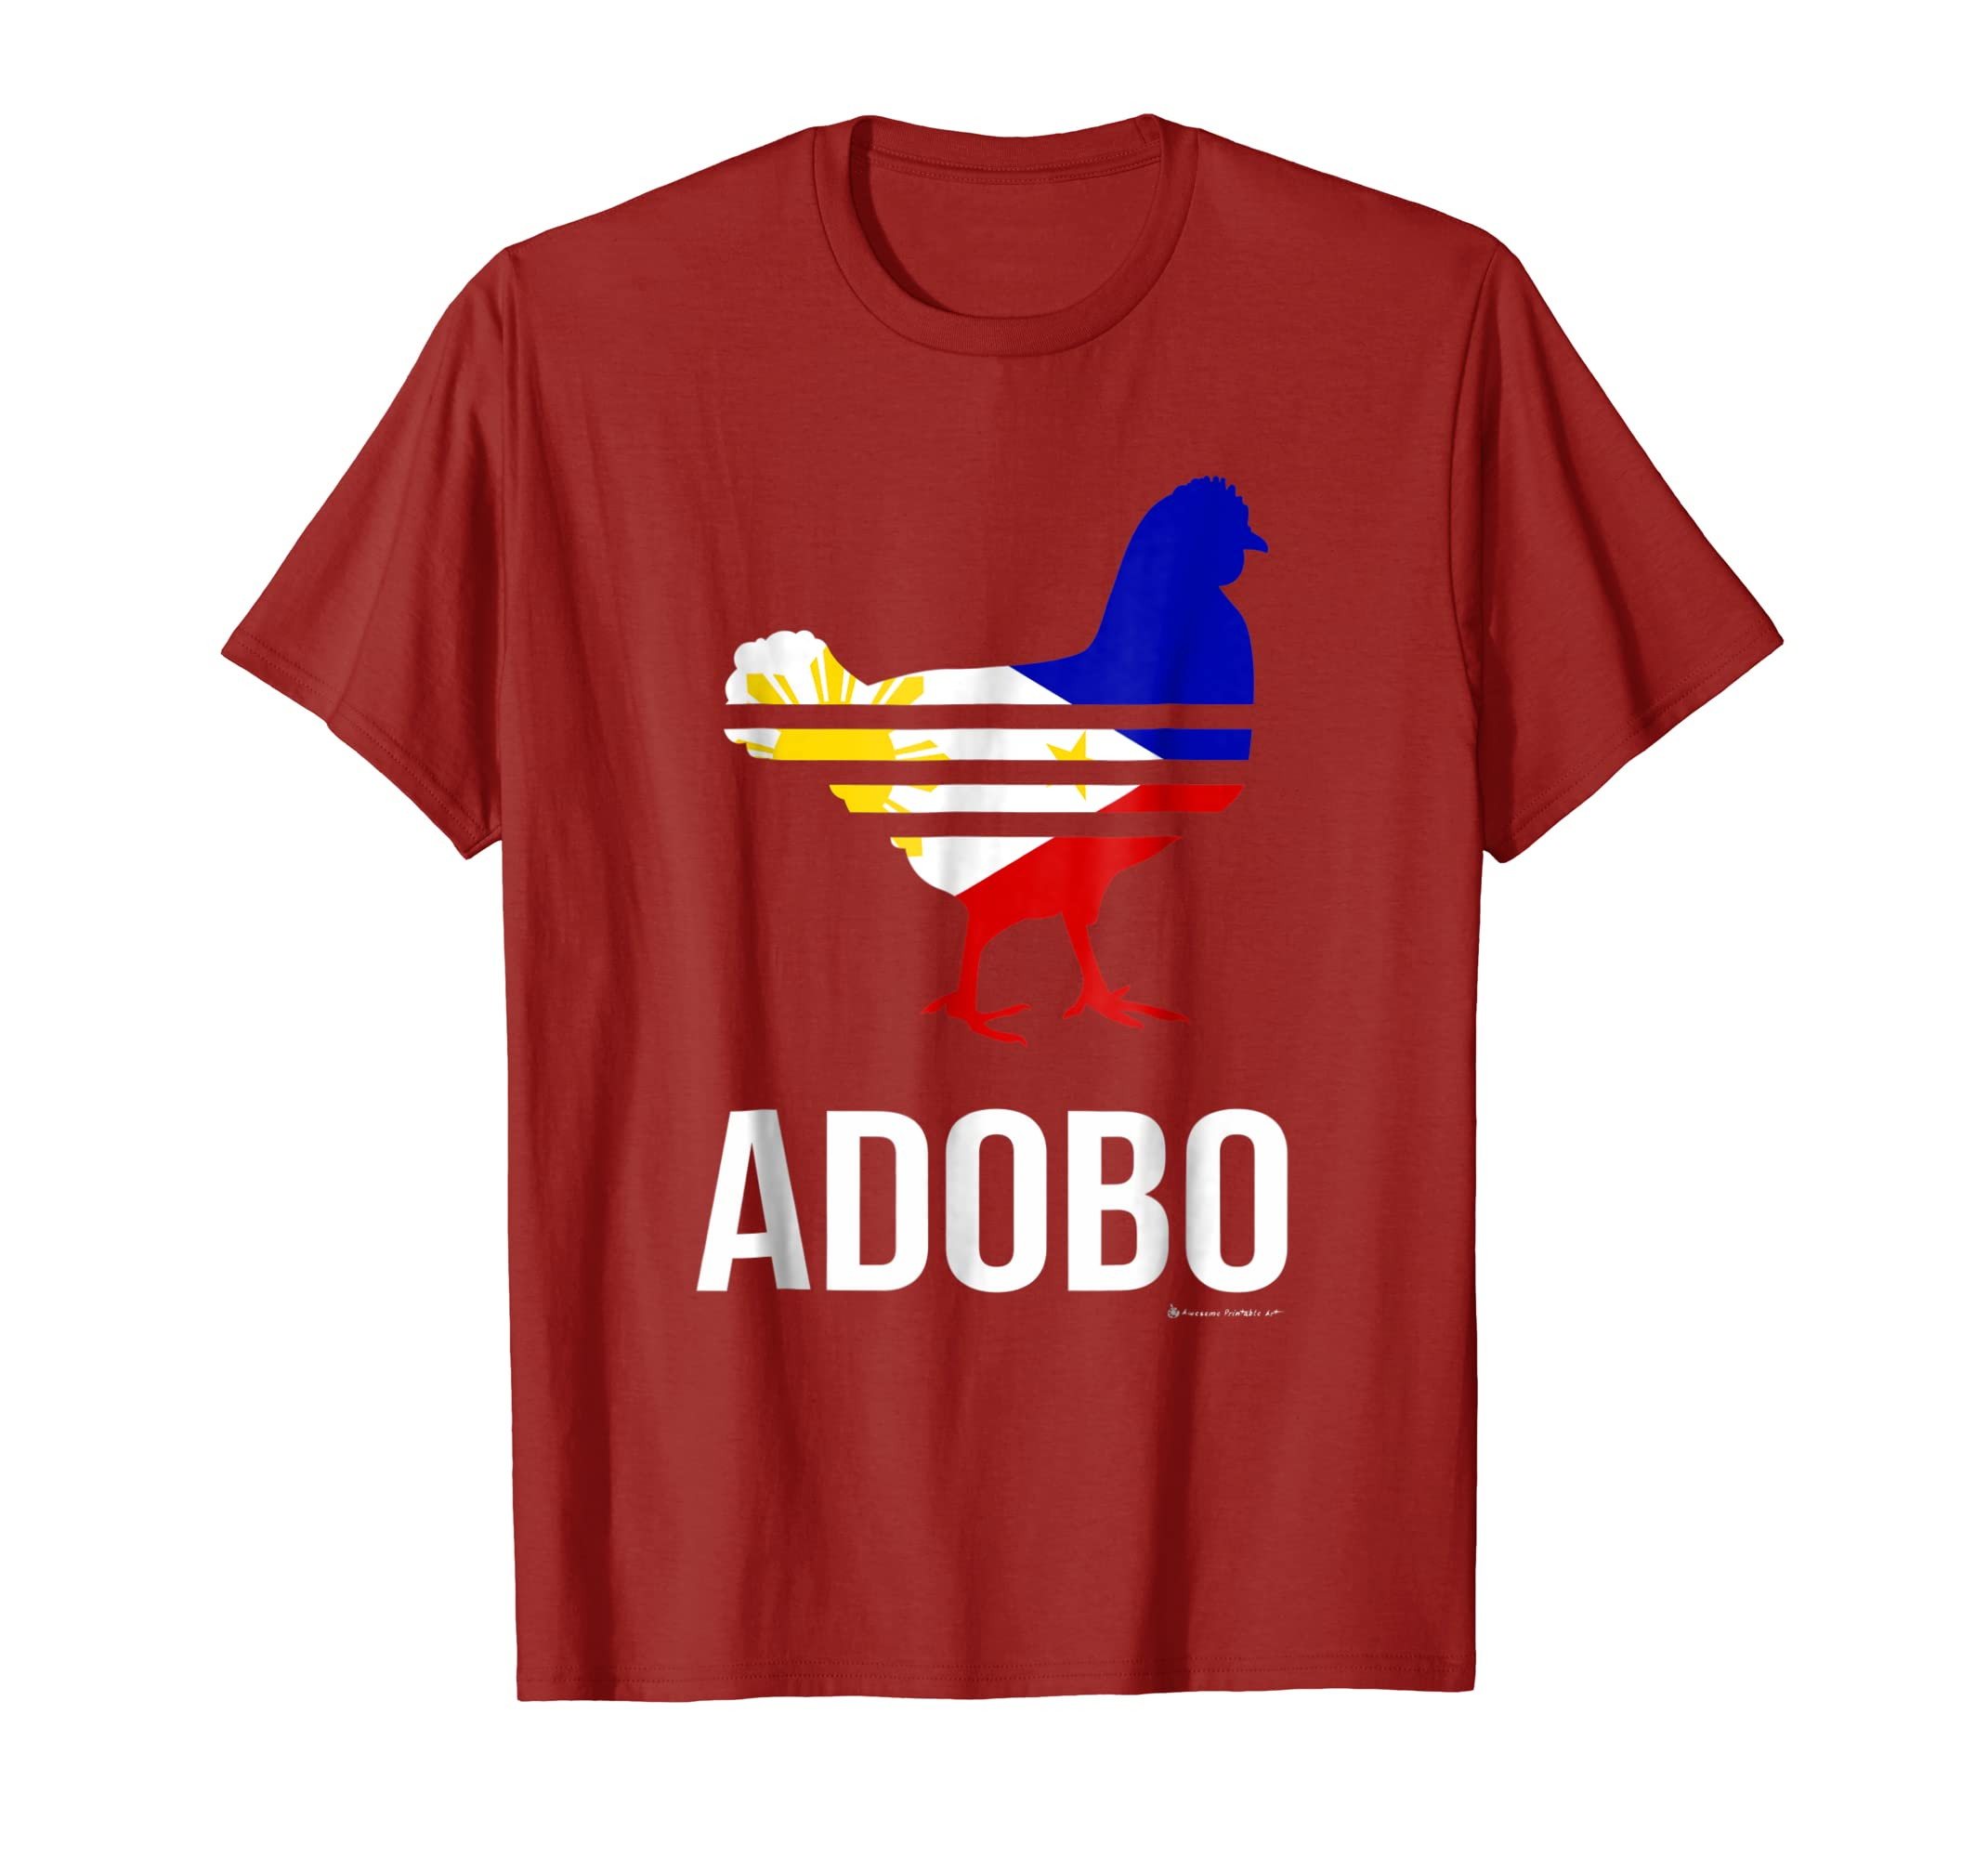 Chicken adobo shirt funny philippines pinoy flag shirt-azvn